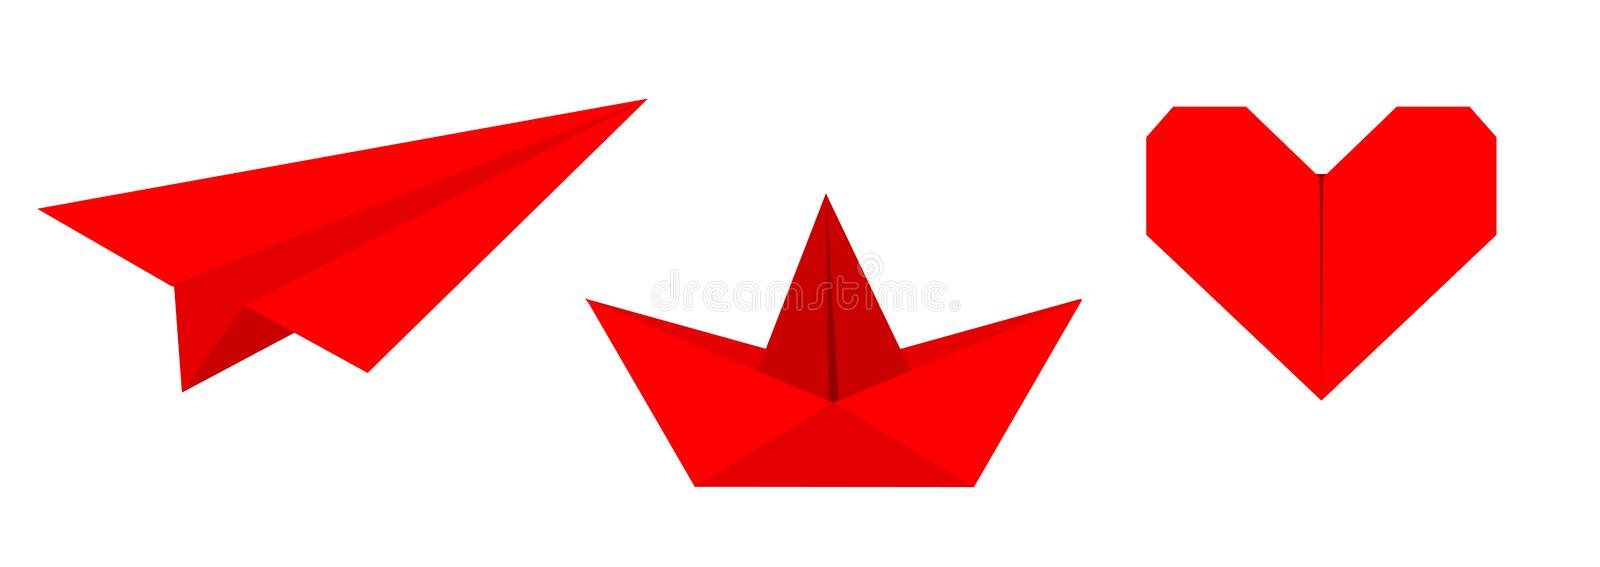 Origami paper plane, boat ship, heart icon set. Red color. Handmade toy line. Flat design. Cute love symbol. White background. Isolated. Vector illustration vector illustration